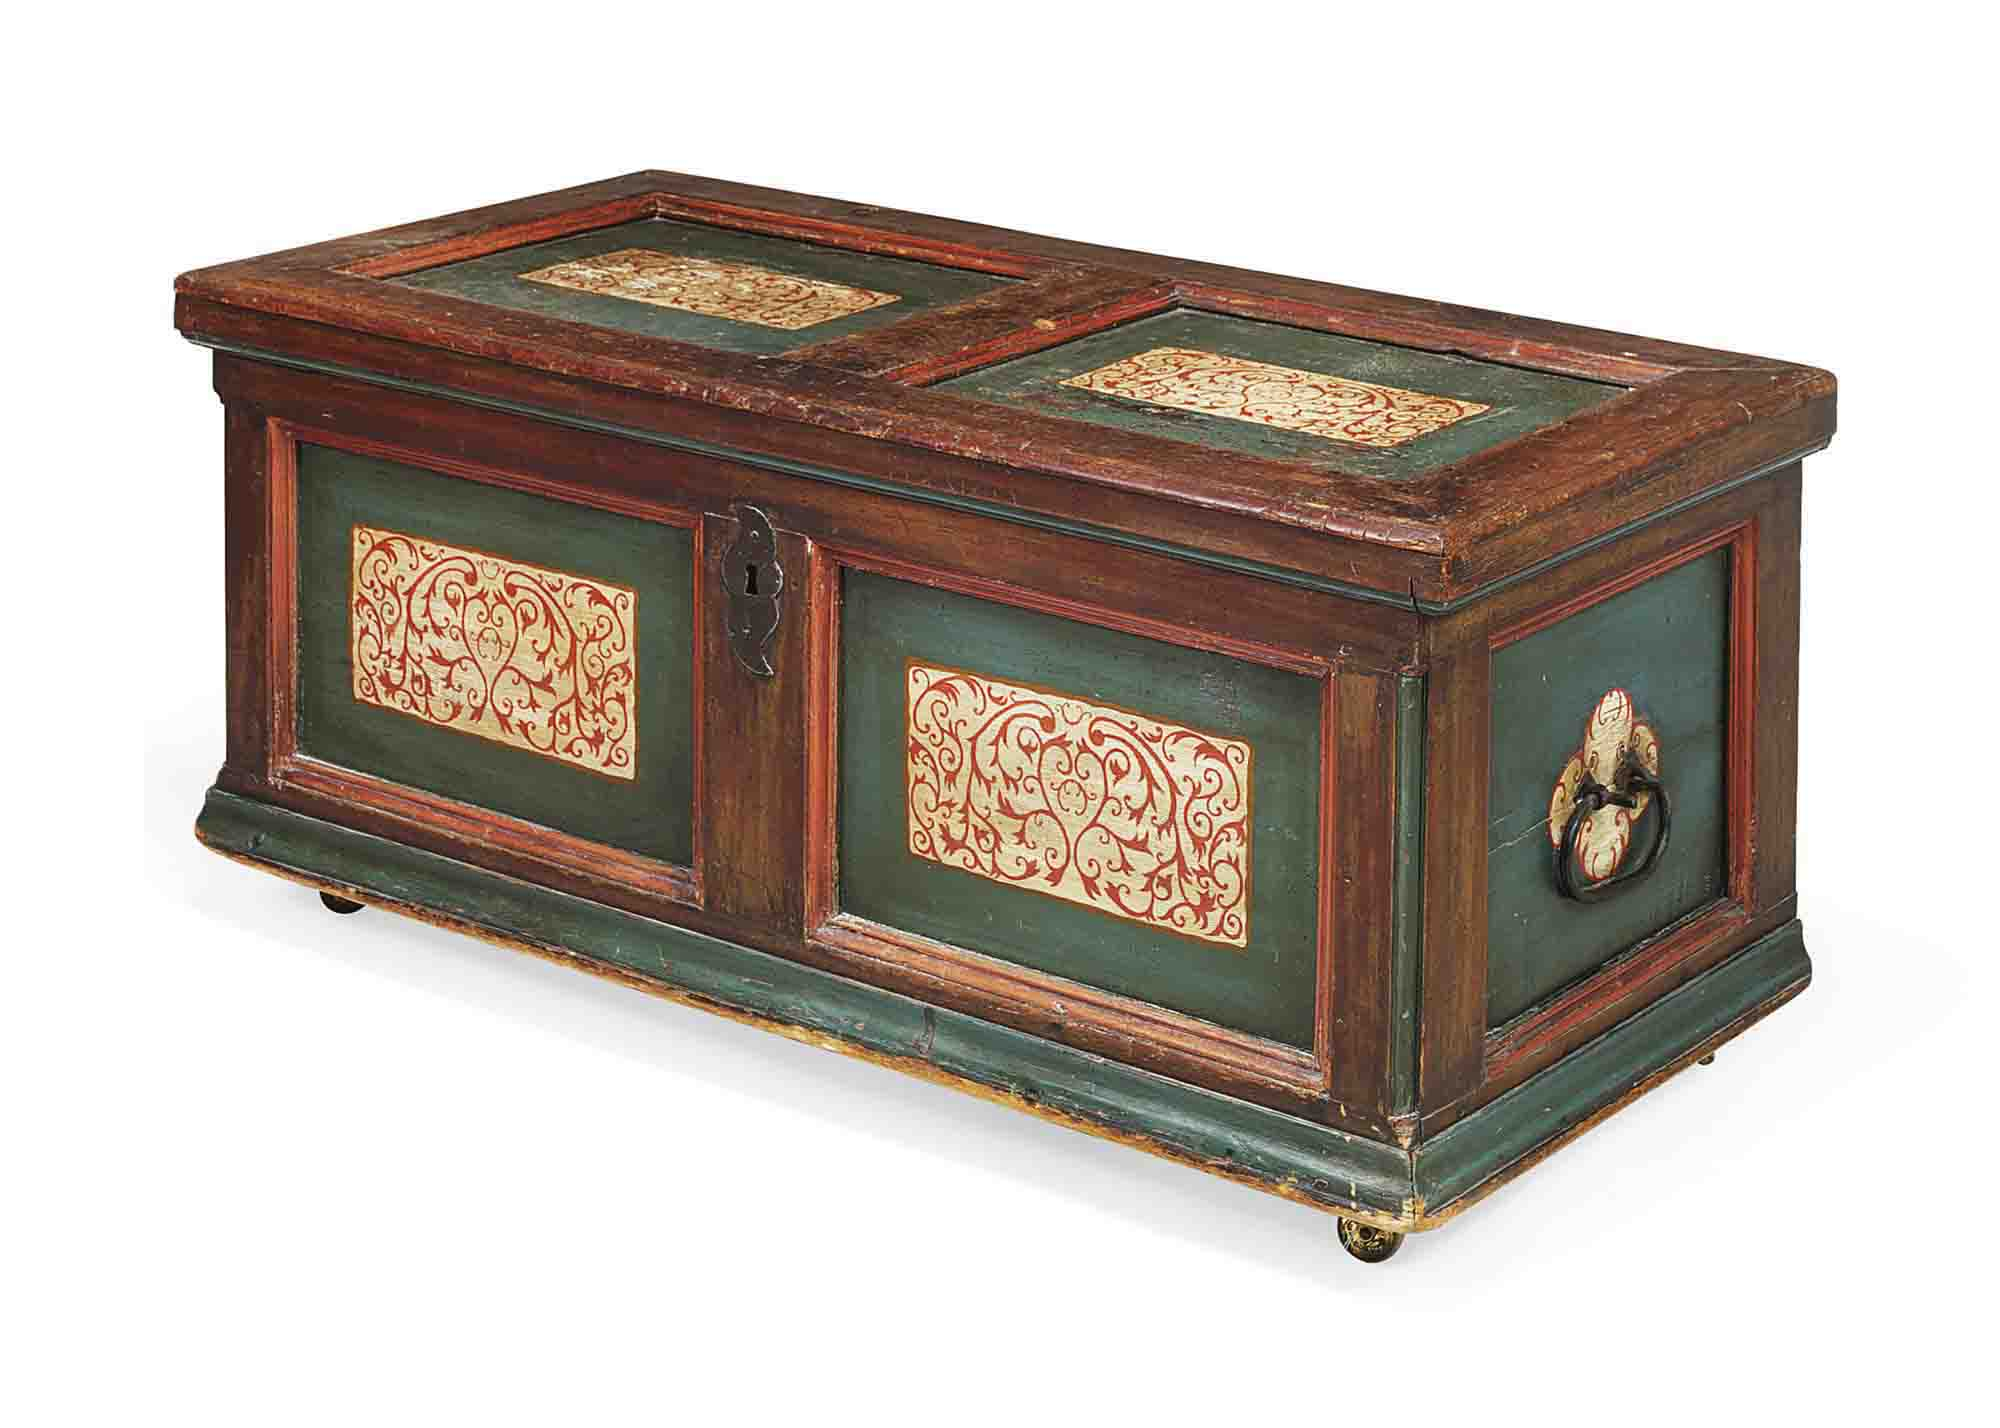 AN AUSTRIAN POLYCHROME DECORATED WALNUT AND PINE CHEST